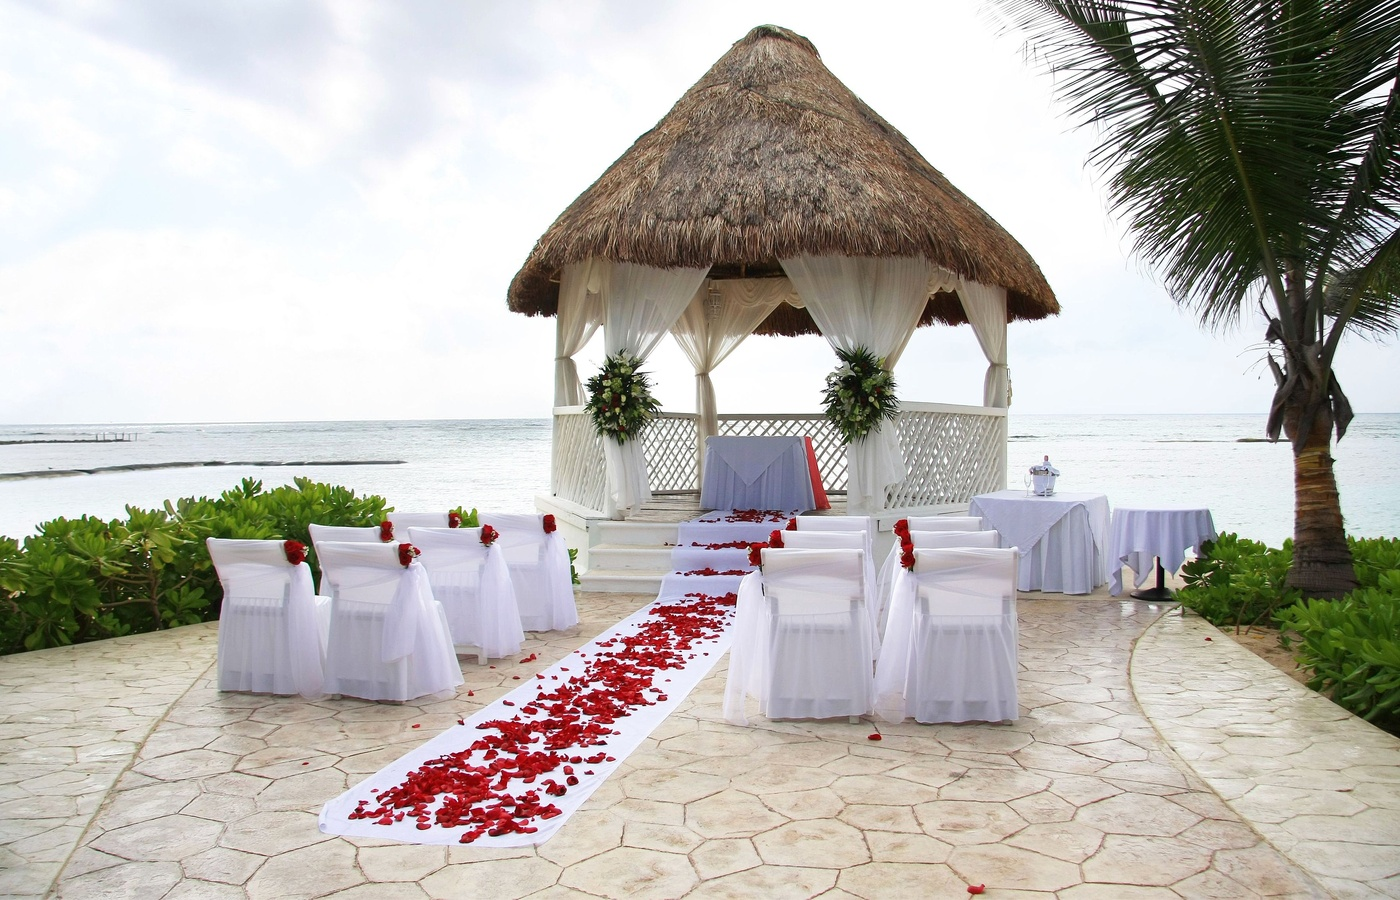 Beach Pics Ideas 25 Most Beautiful Beach Wedding Ideas